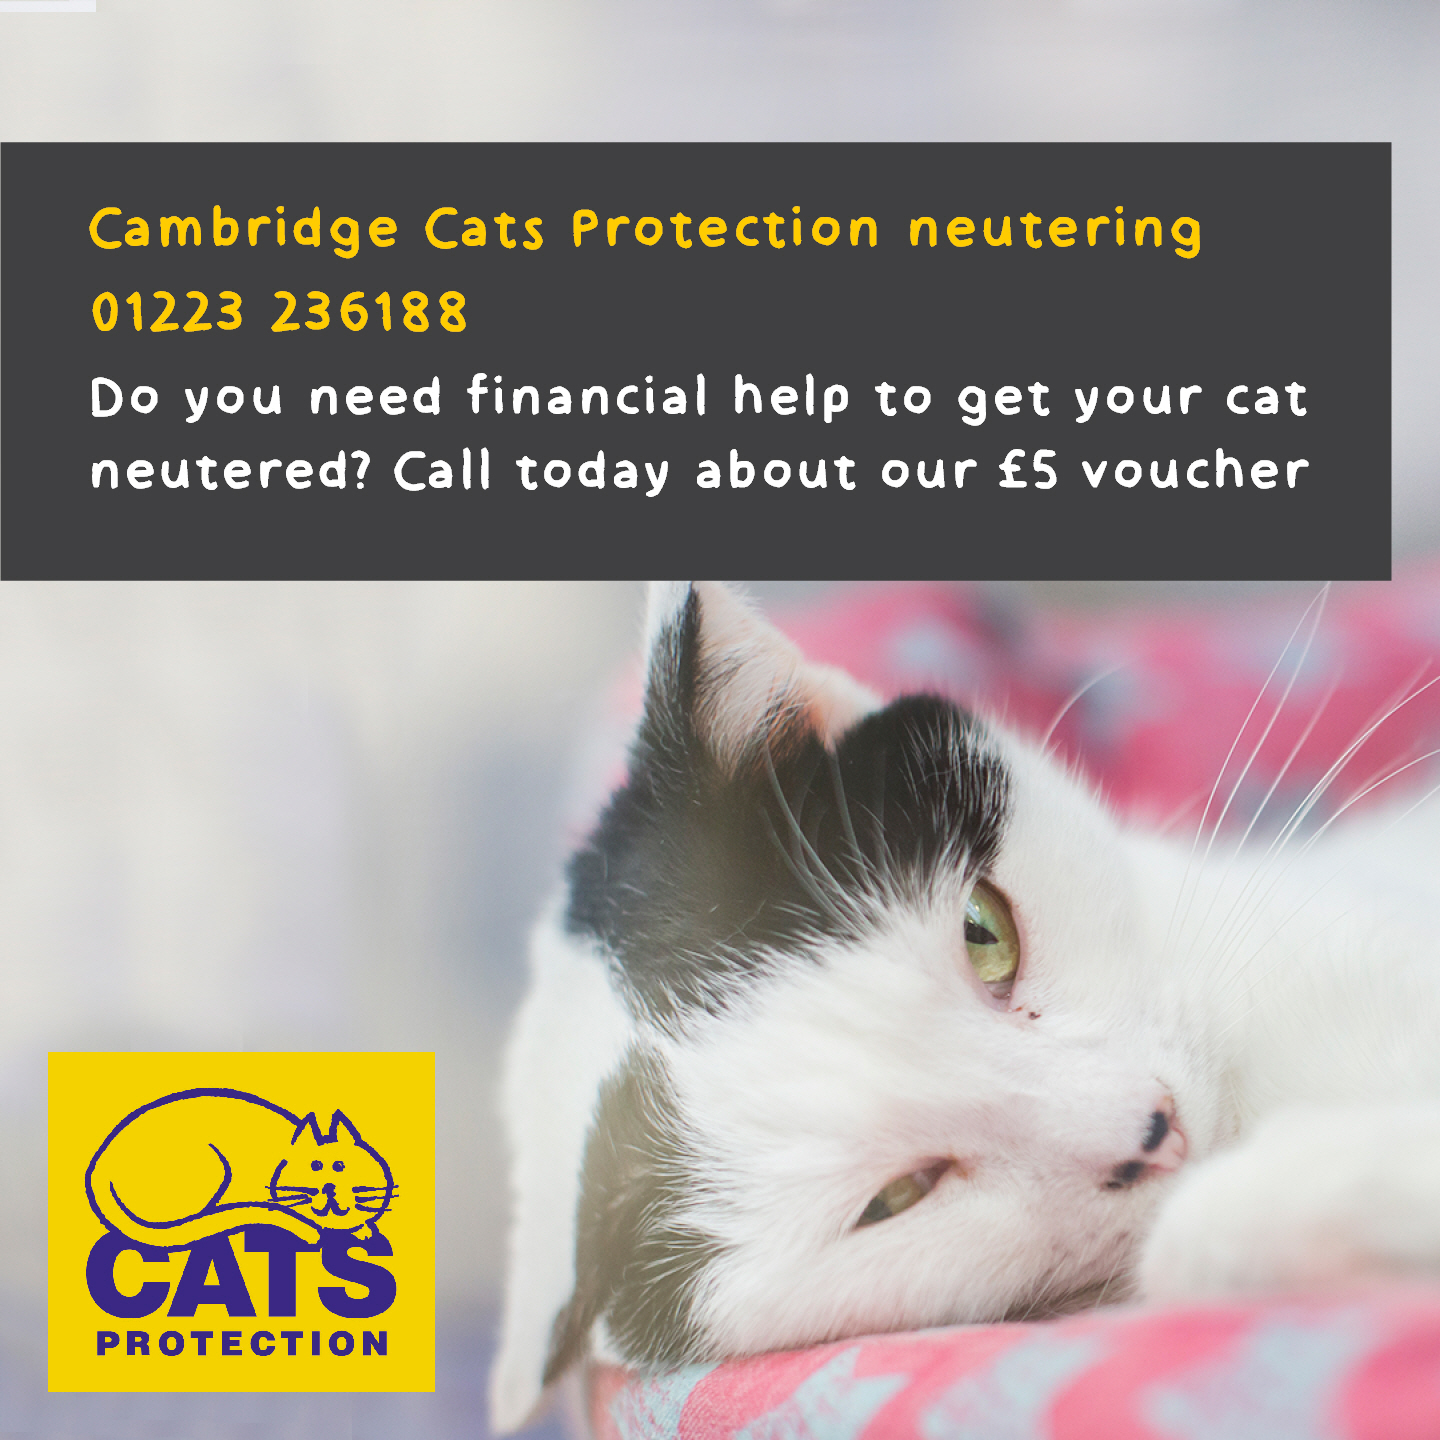 Cambridge neuter helpline 01223 236188